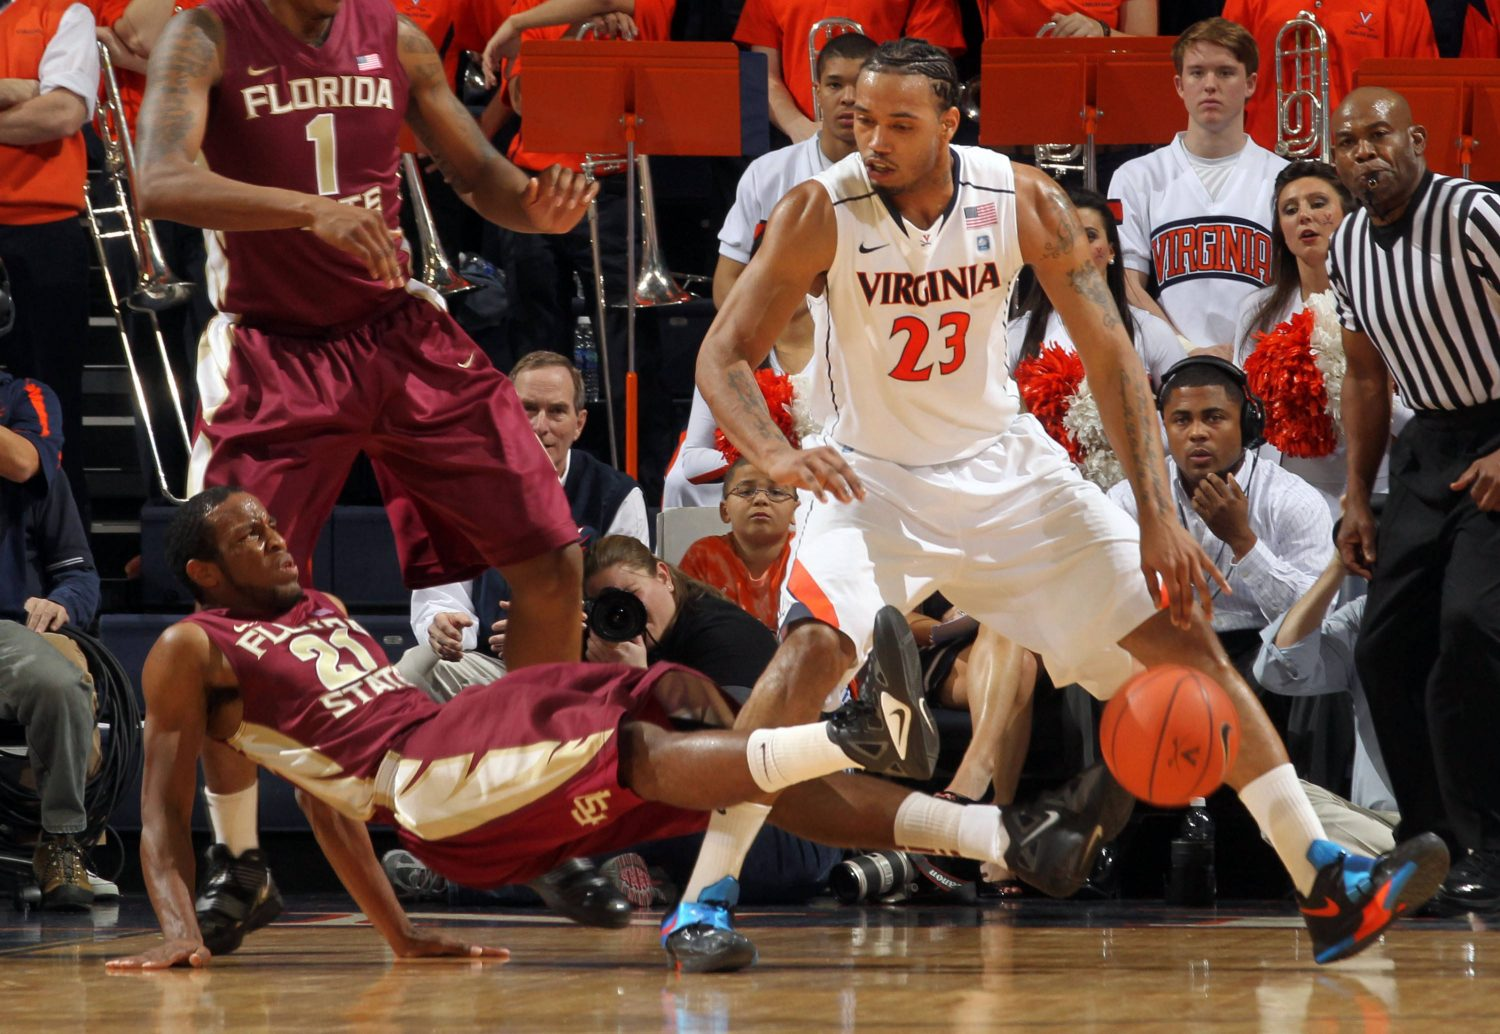 Florida State guard Michael Snaer draws an offensive foul from Virginia forward Mike Scott during the first half. (AP Photo/Andrew Shurtleff)